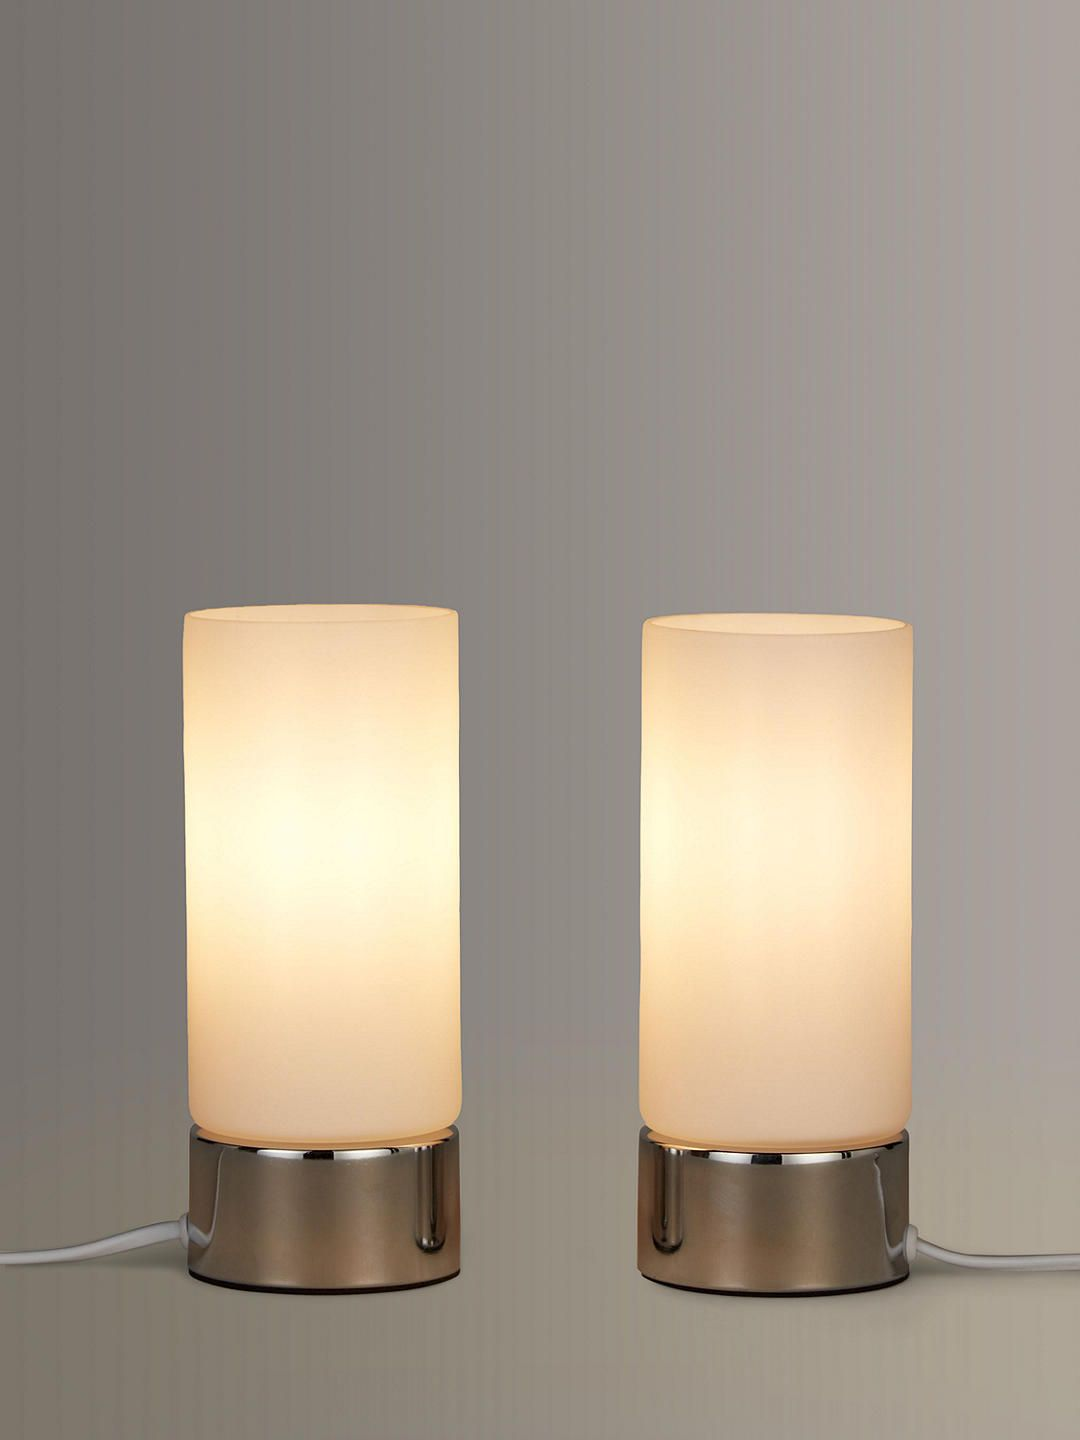 John Lewis Partners Cara Glass Touch Lamps Set Of 2 Touch Lamp Lamp Energy Efficient Bulbs